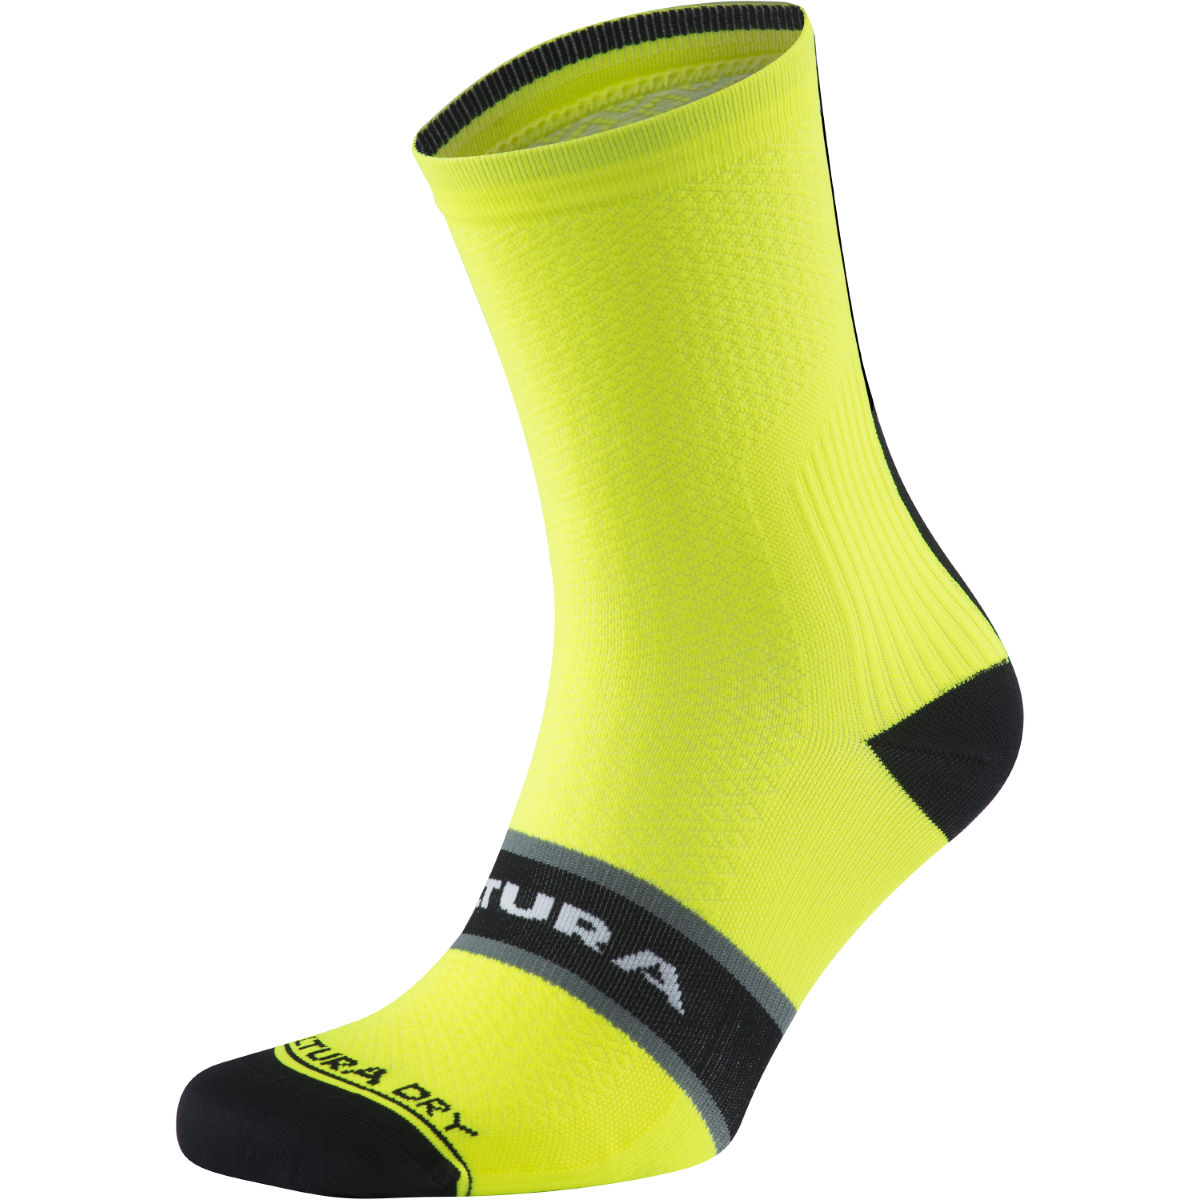 Altura elite socks cycling socks hi viz yellow ss18 al14els9m